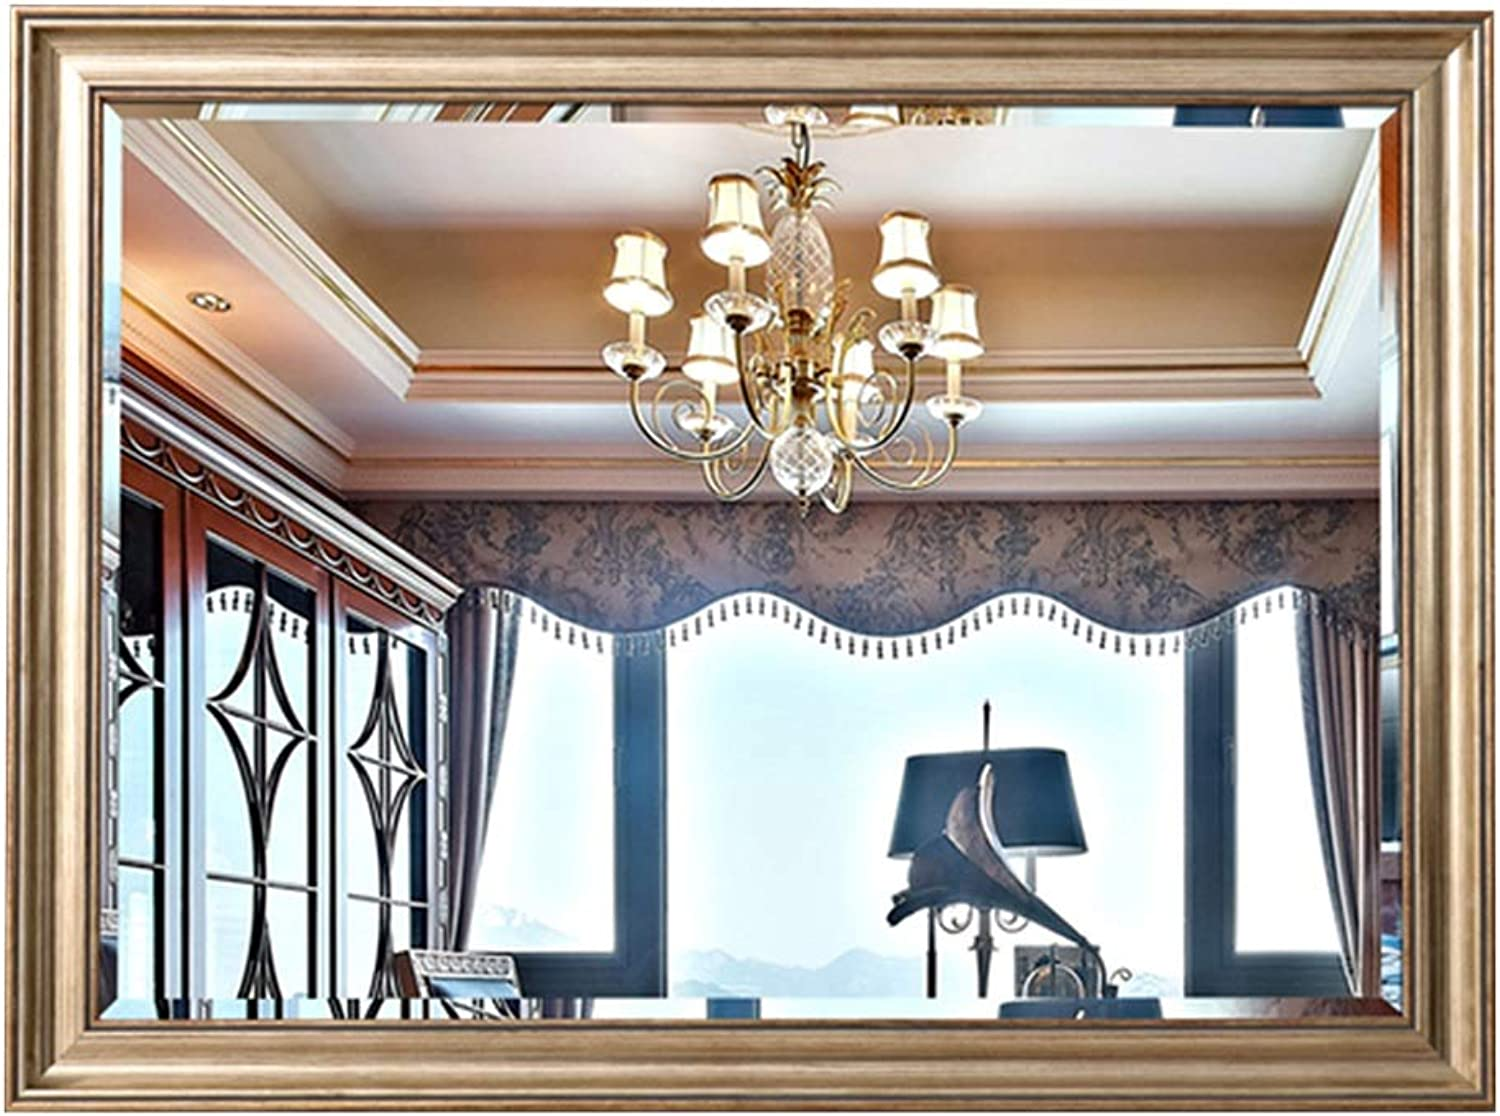 Wall-Mounted Mirrors Mirror Makeup Mirror Beauty Mirror Bathroom Full Body Mirrorvanity Mirror Living Room Wall Mirror Bedroom Mirror, Thickness 5mm (color   Clear, Size   50  70cm)